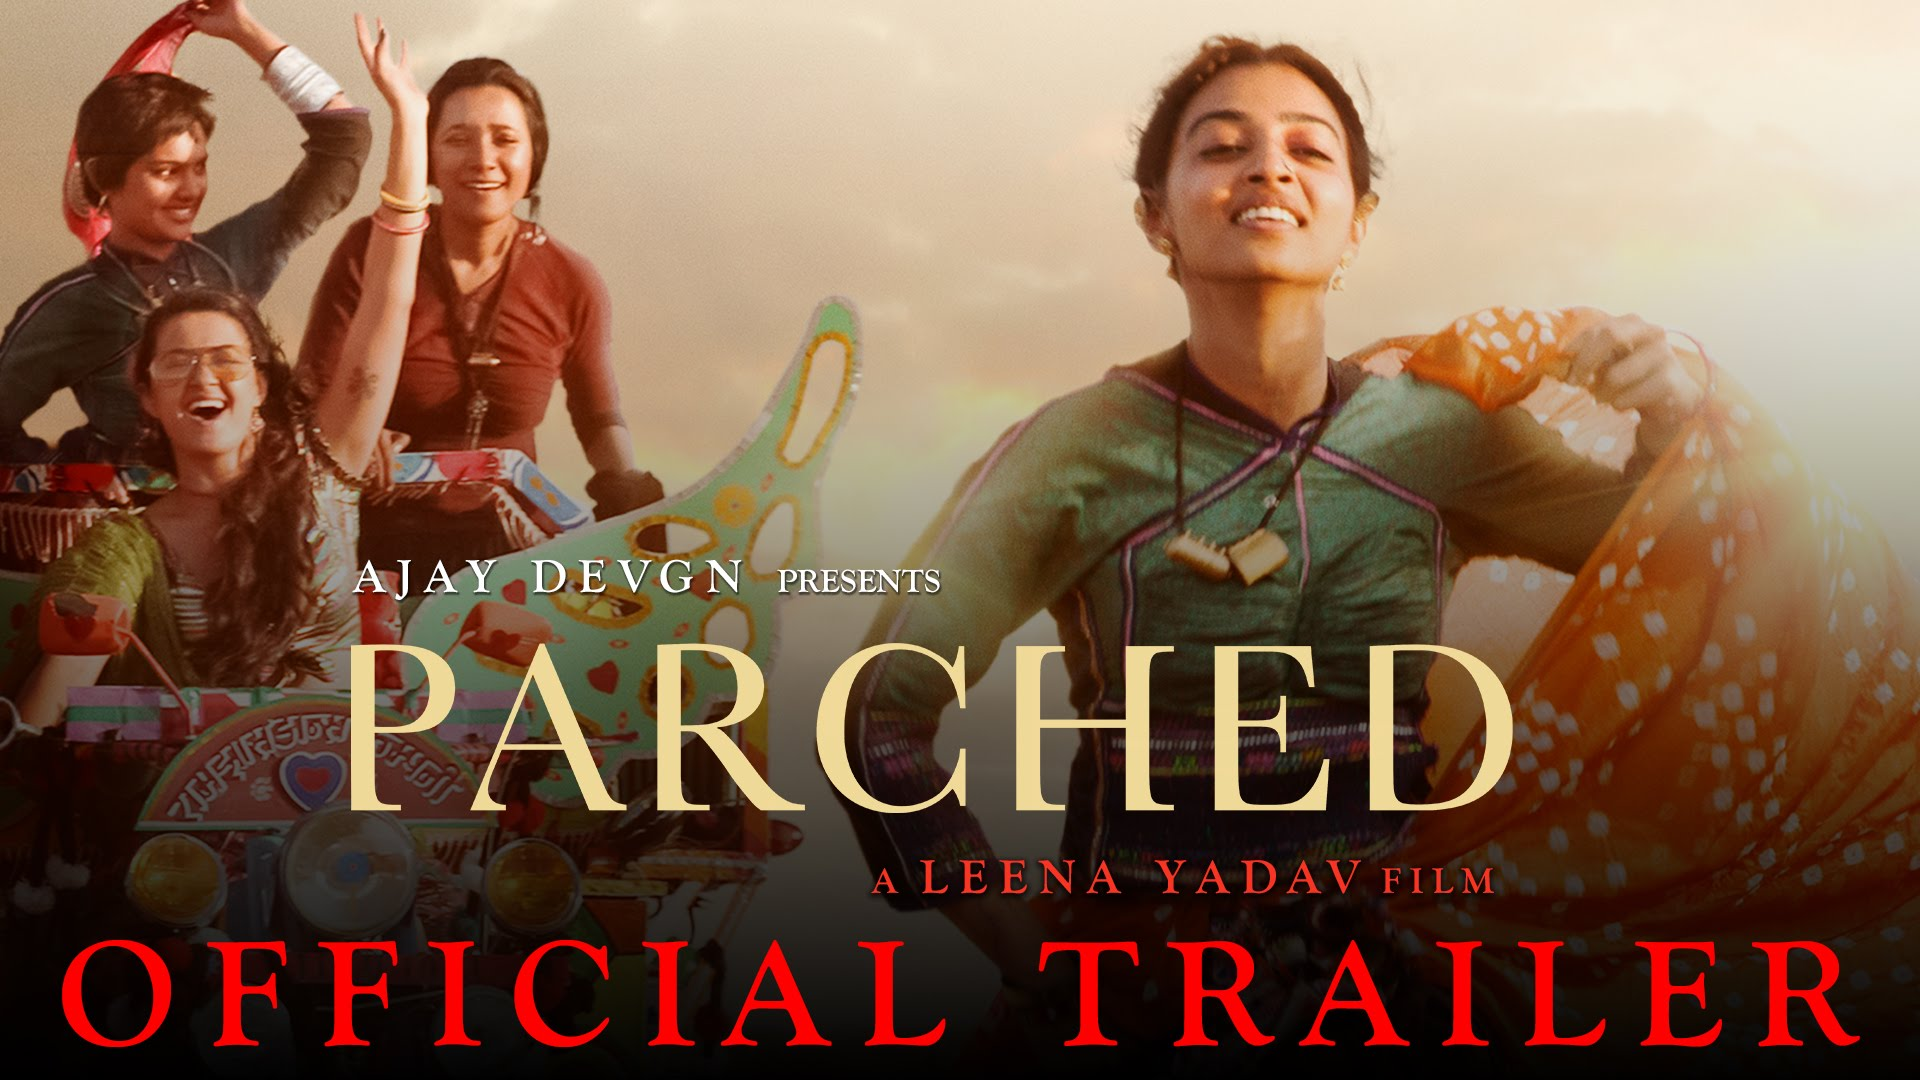 Parched Trailer Review- Amazing Trailer, Amazing Story and Amazing Star-cast!